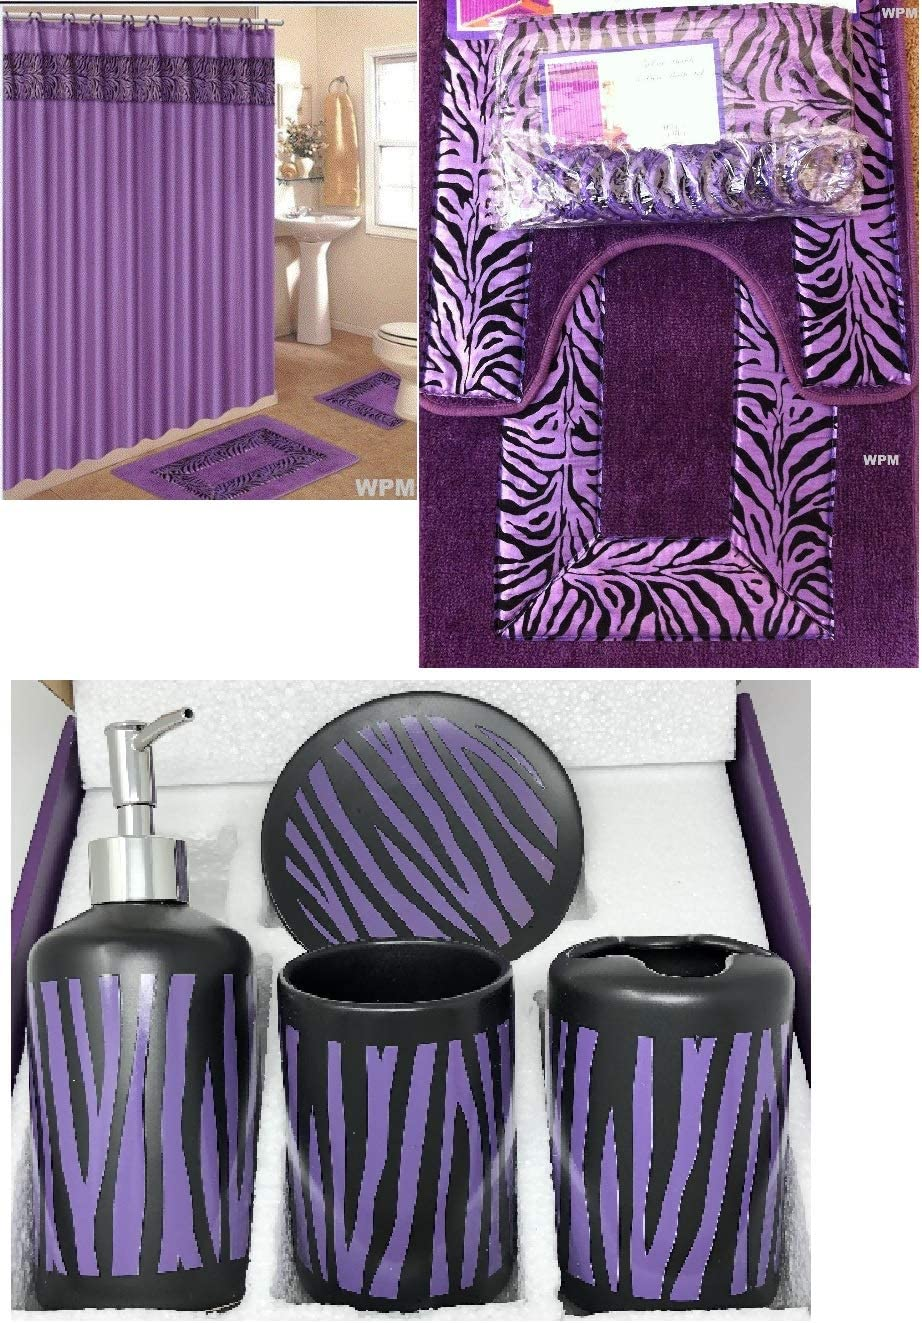 Bathroom Mat Shower Curtain Waterpoof African Woman Fruit Baskets on the Heads